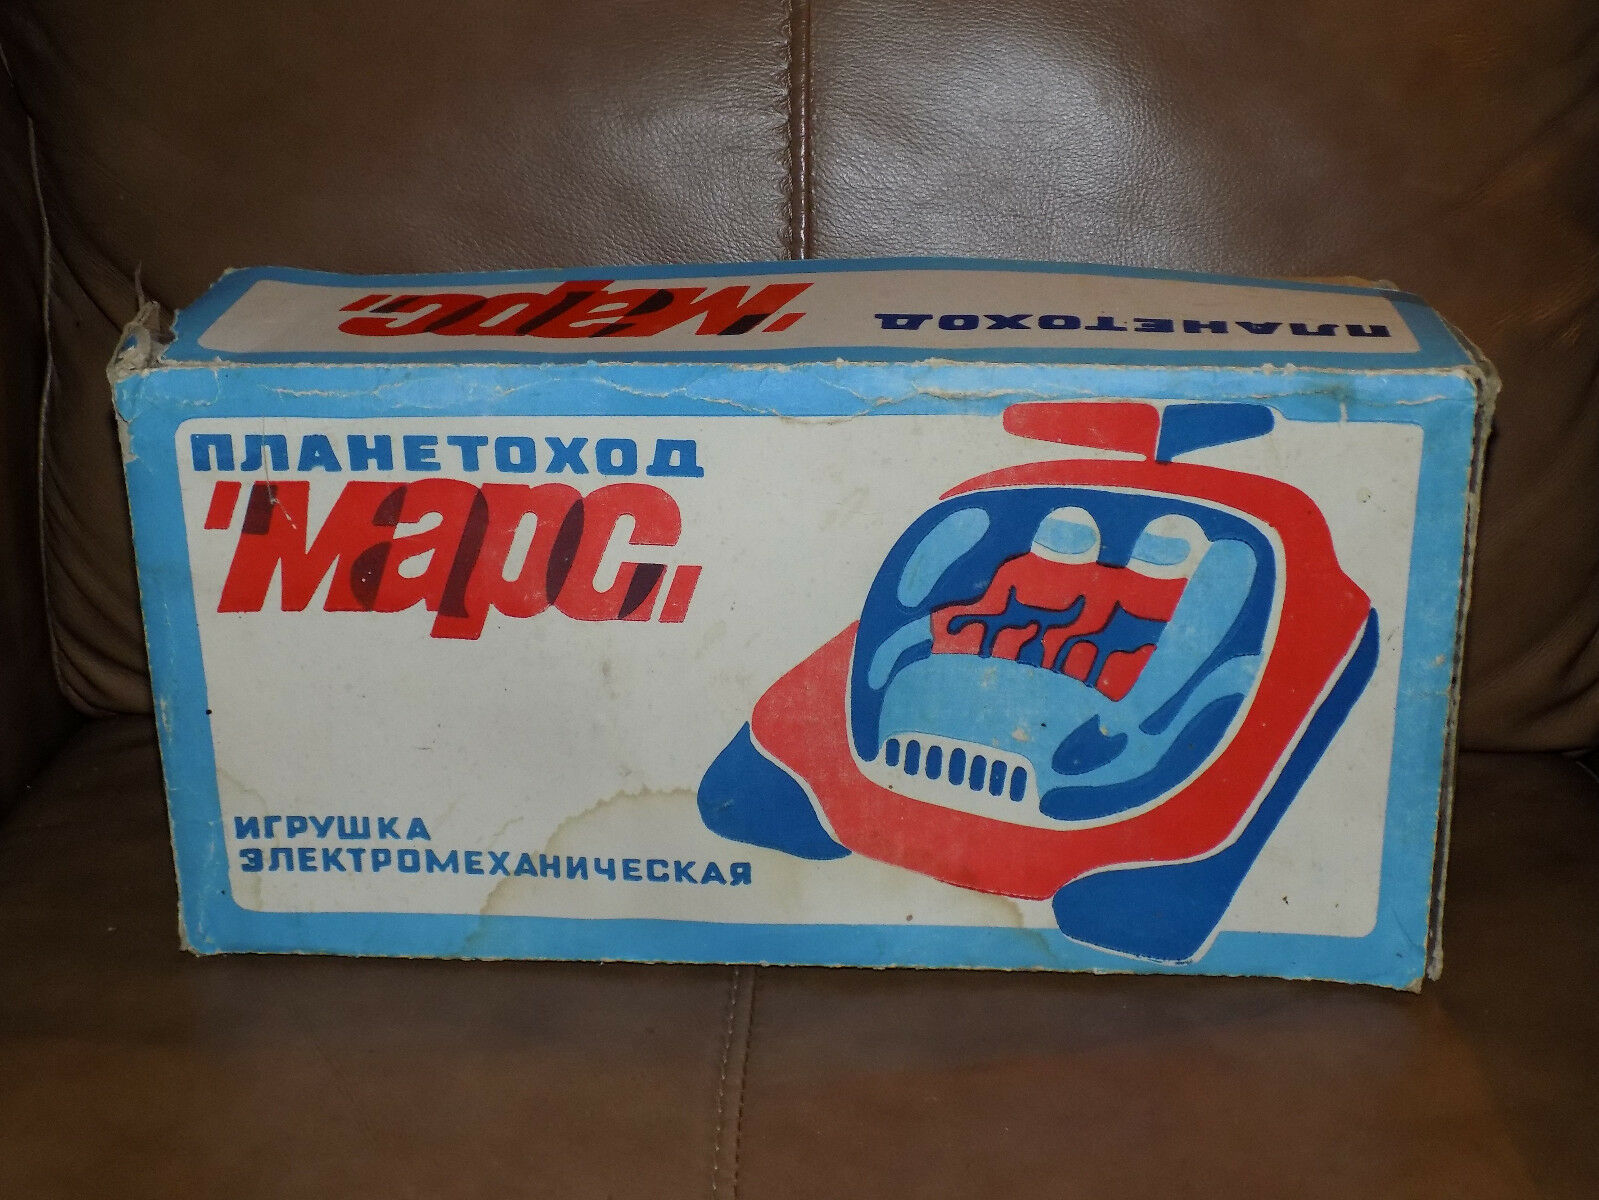 Russian Battery Operated Space Toy in the box